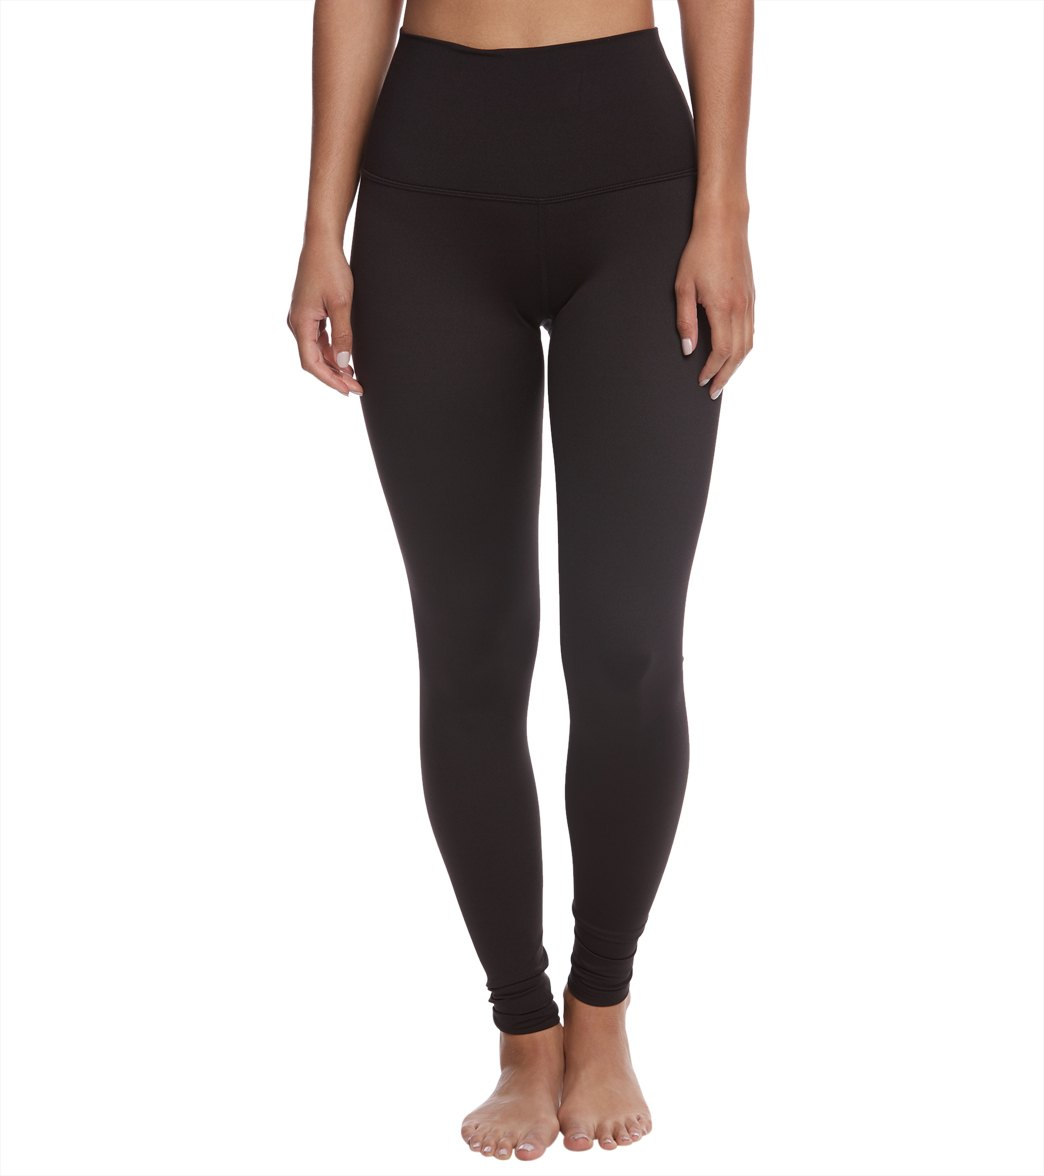 7d5a4ec44b Mika Yoga Wear Kaya High Waisted Yoga Leggings at YogaOutlet.com ...